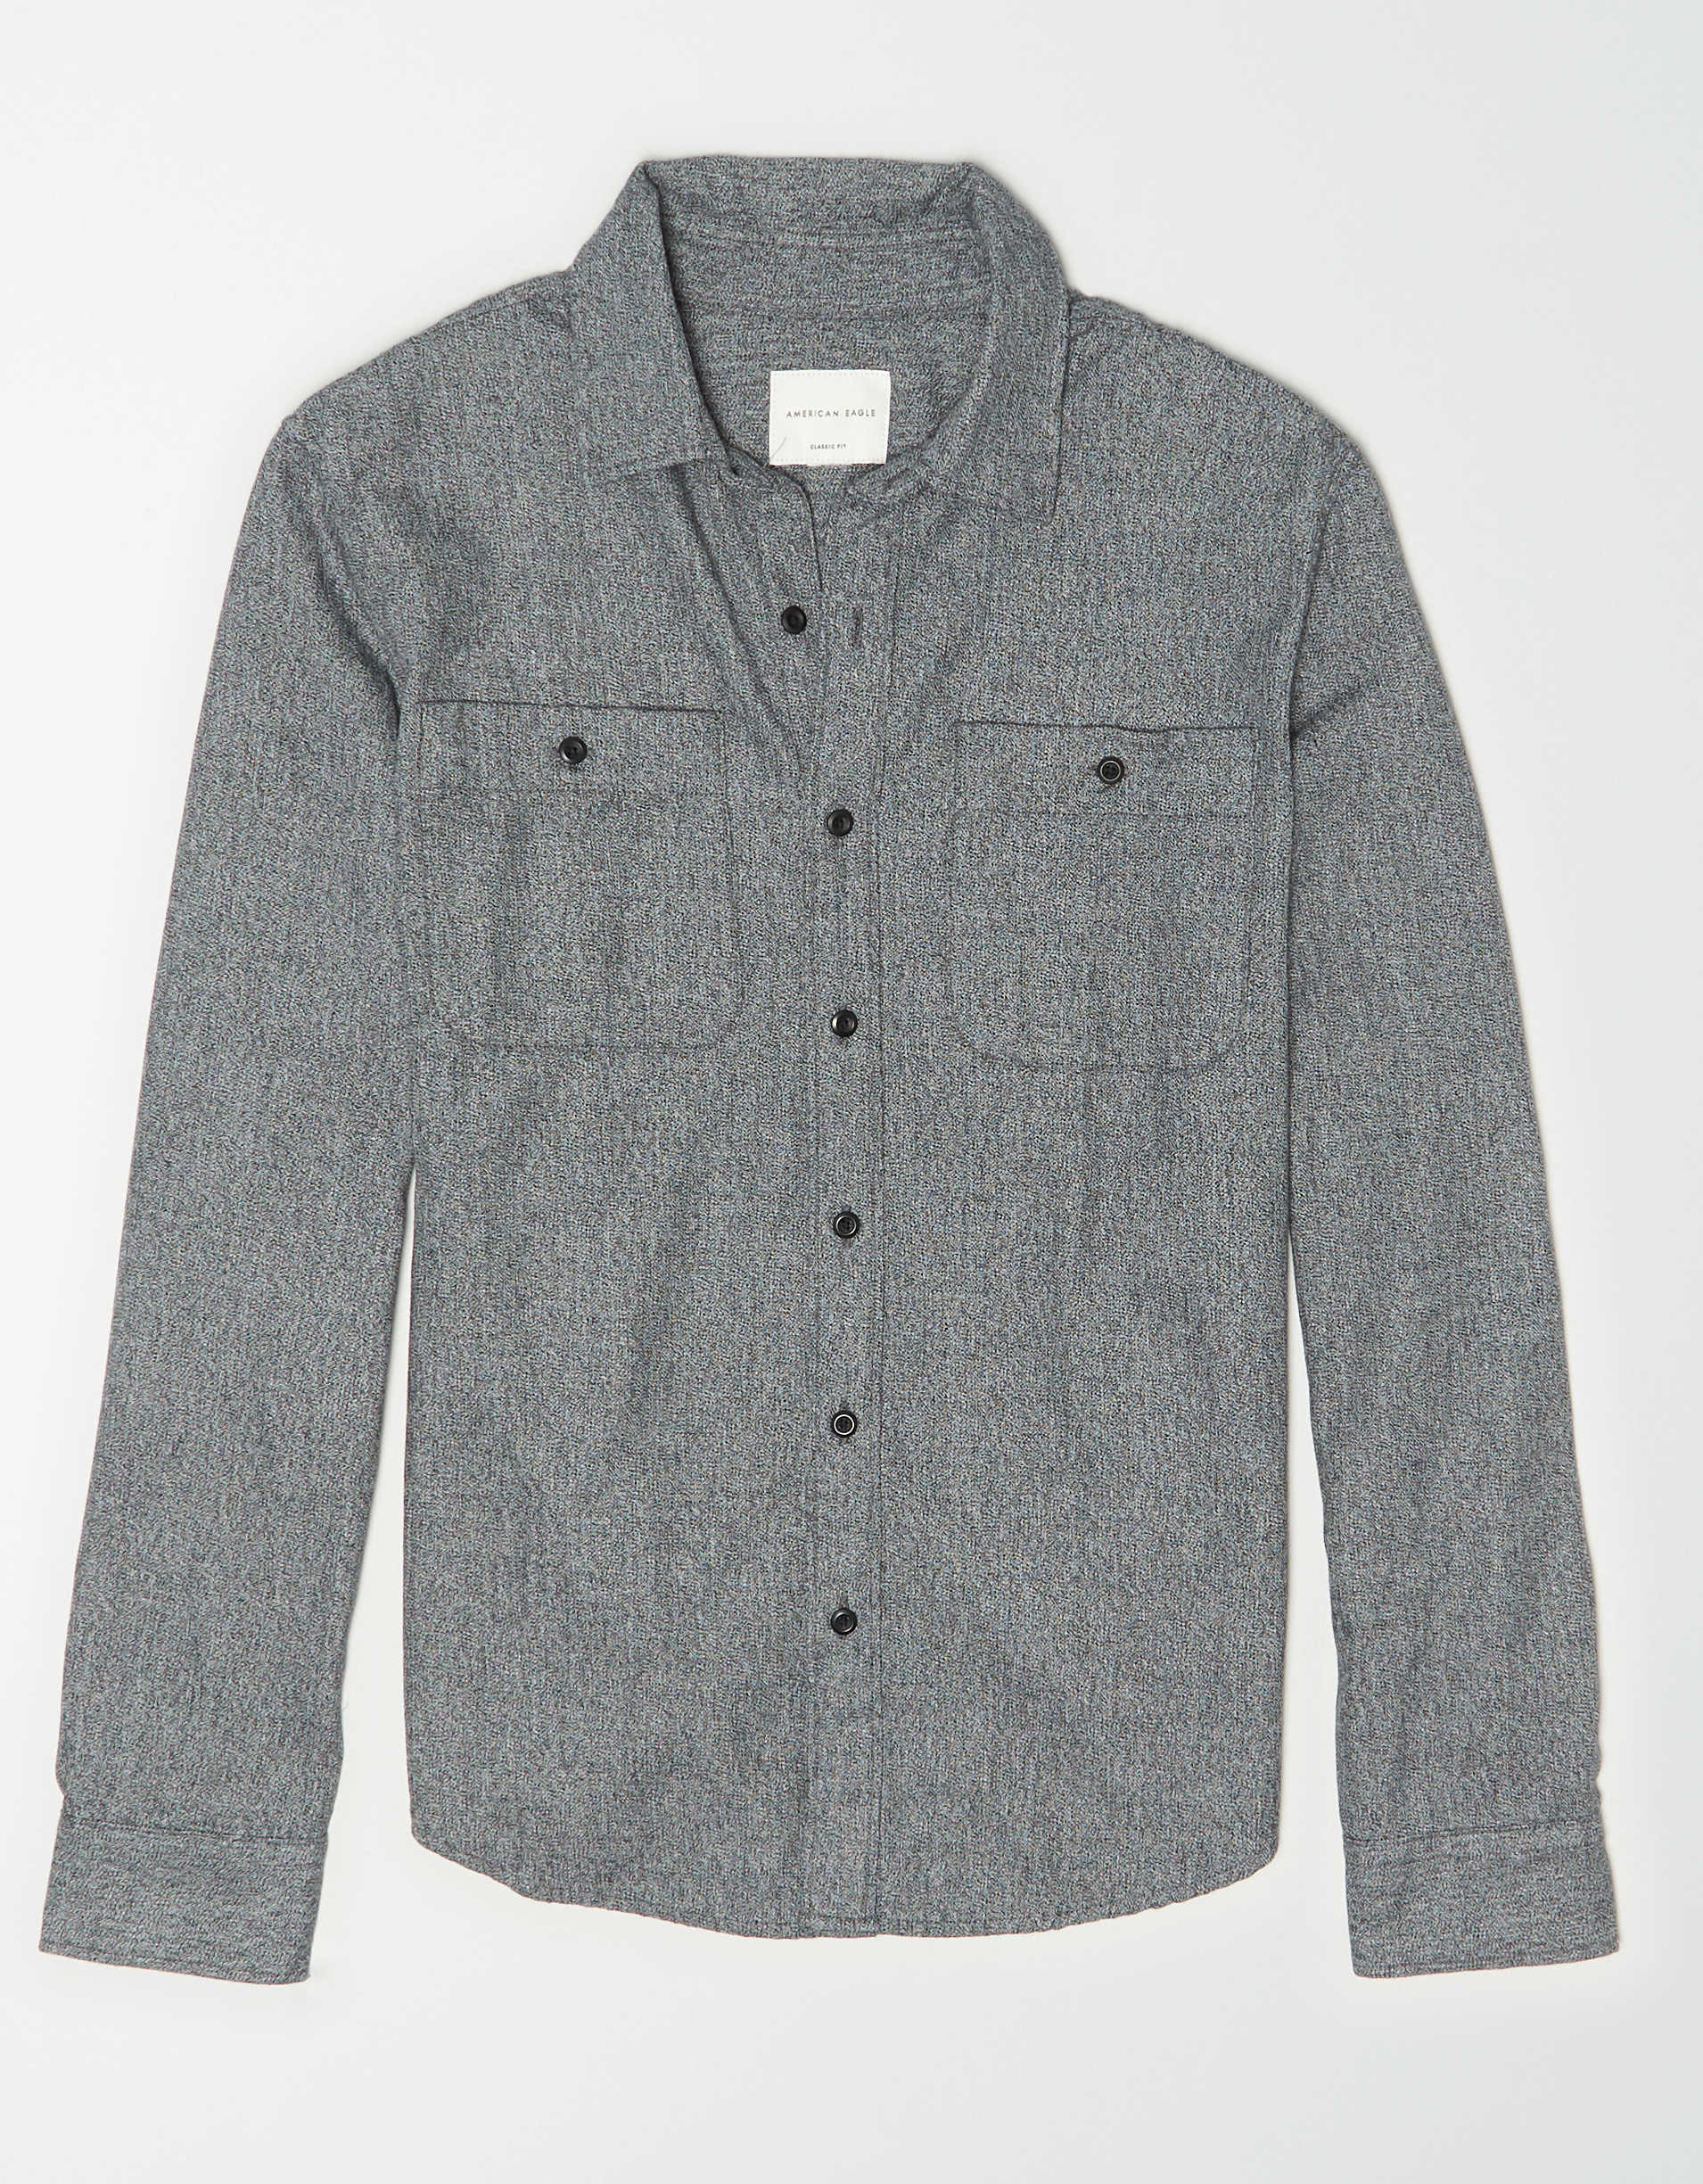 AE Twill Button Up Shirt